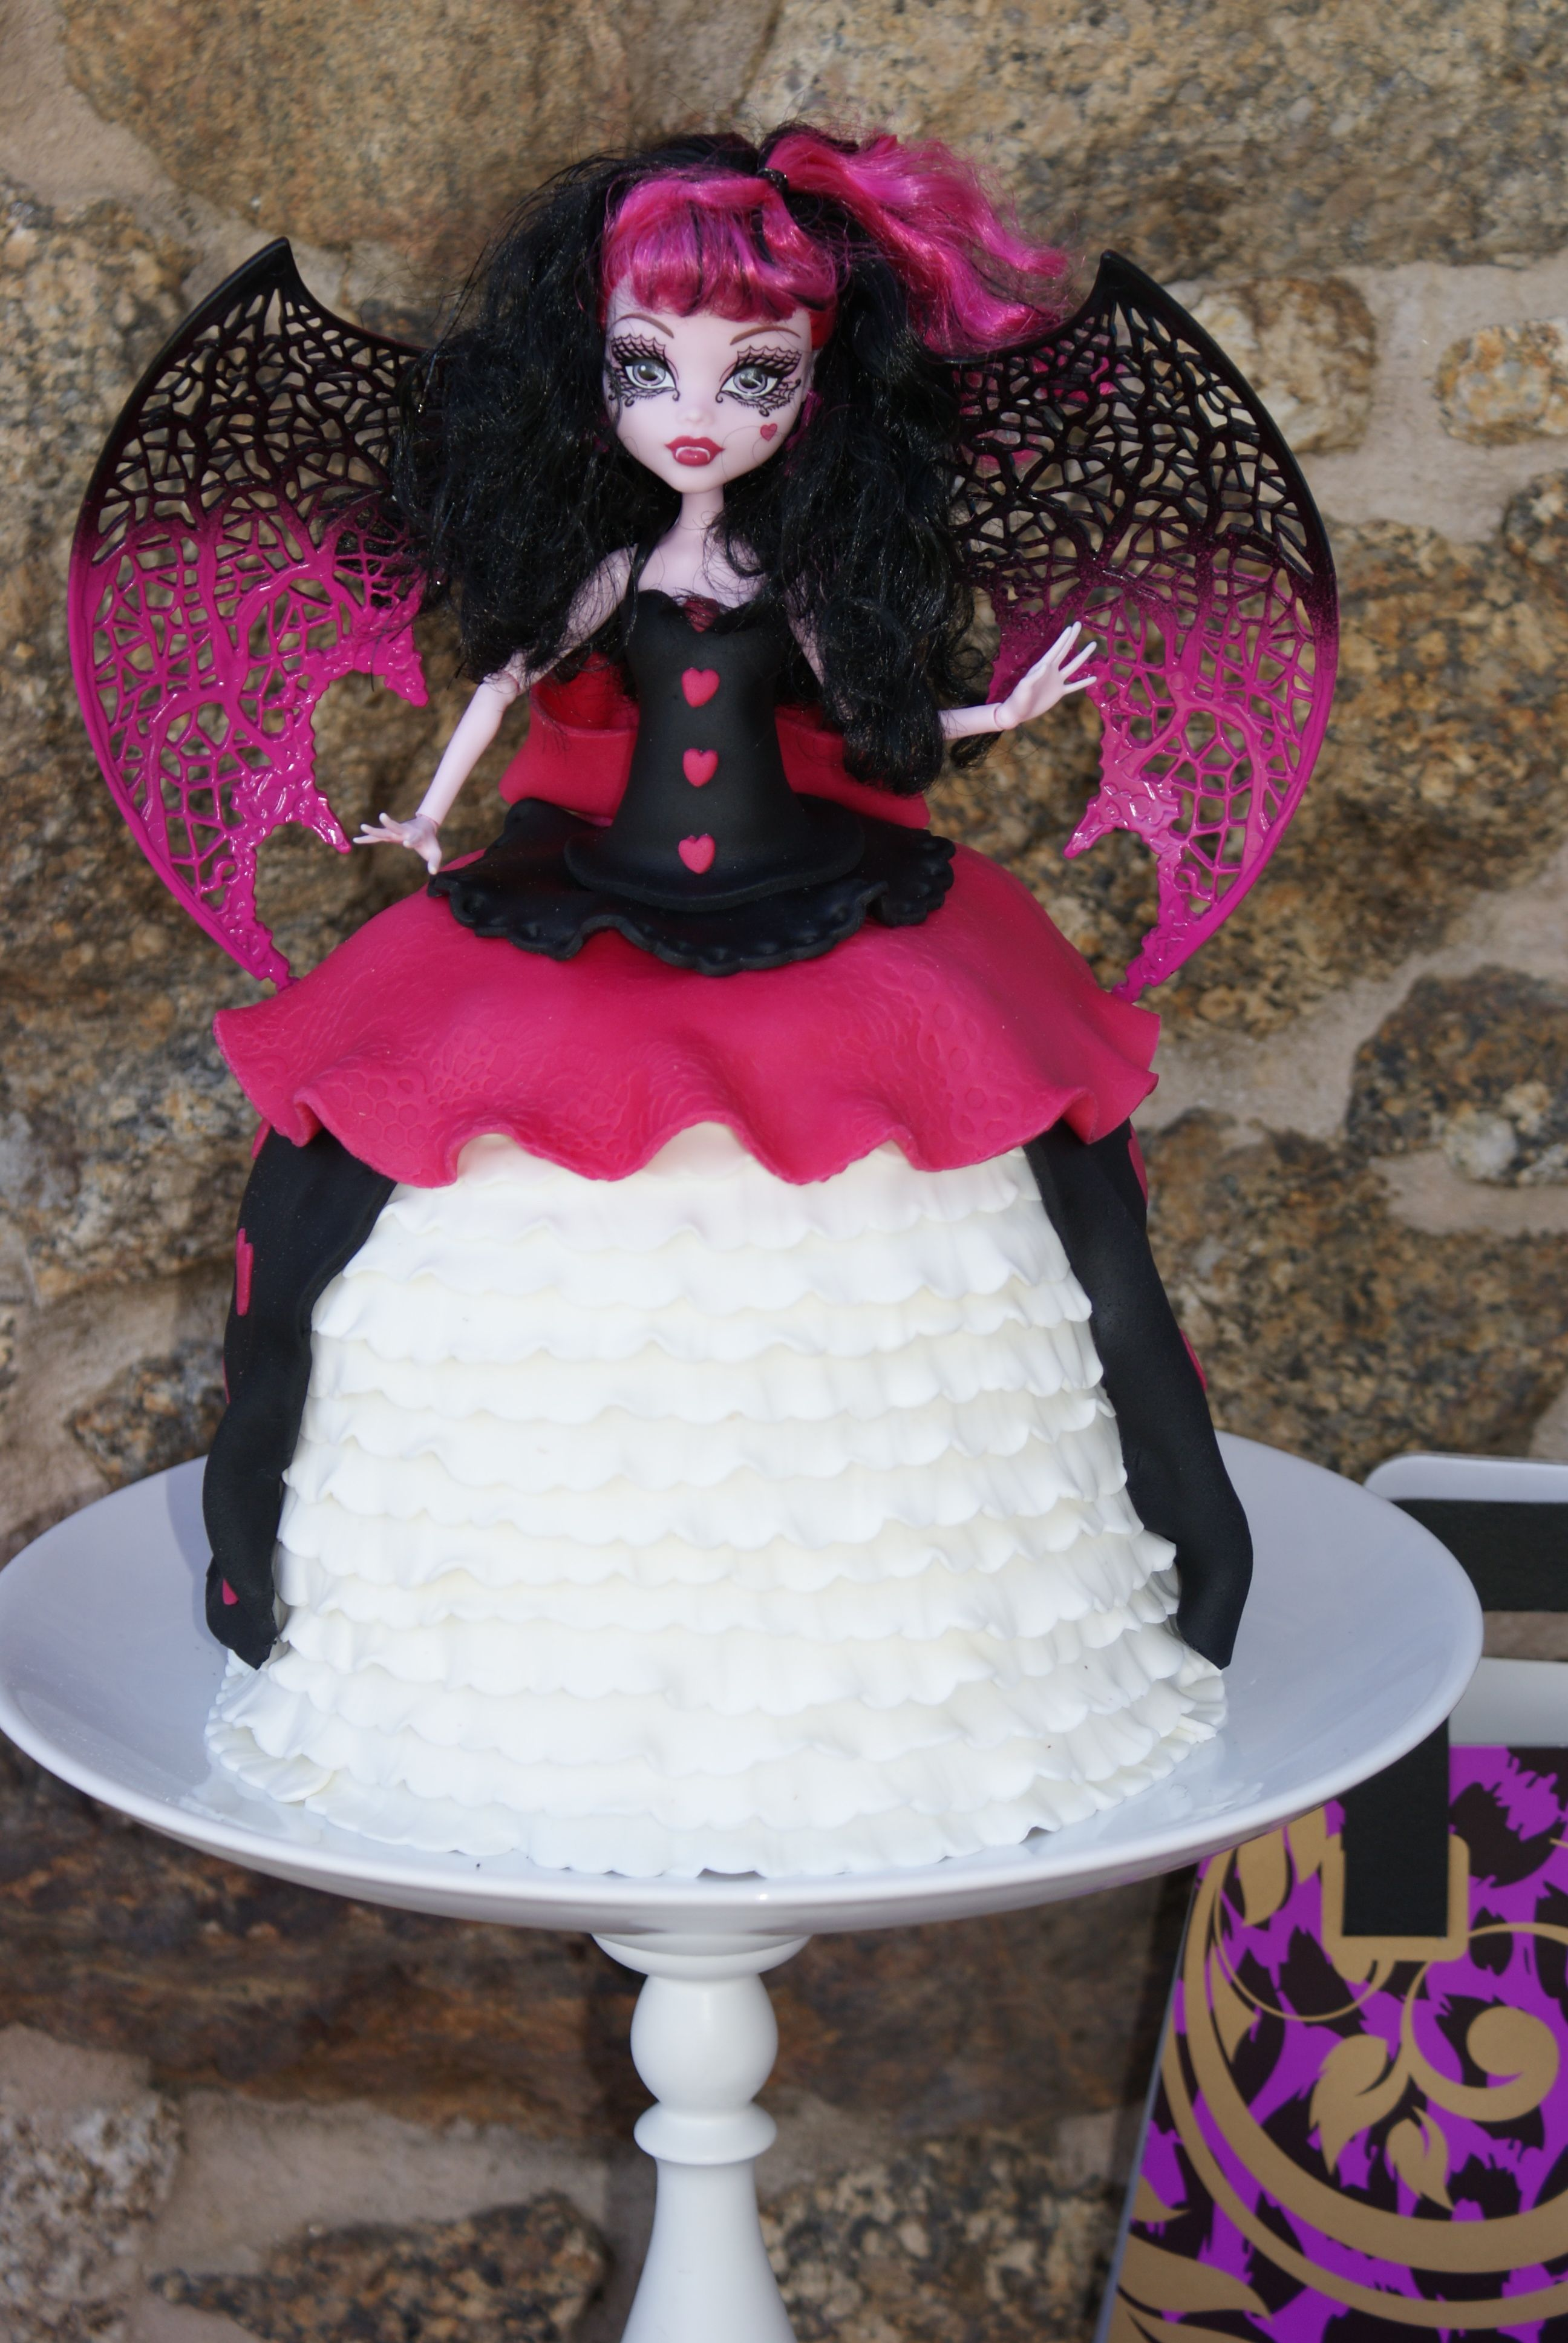 Astounding Monster High Doll Cake With Images Barbie Doll Cakes Personalised Birthday Cards Sponlily Jamesorg